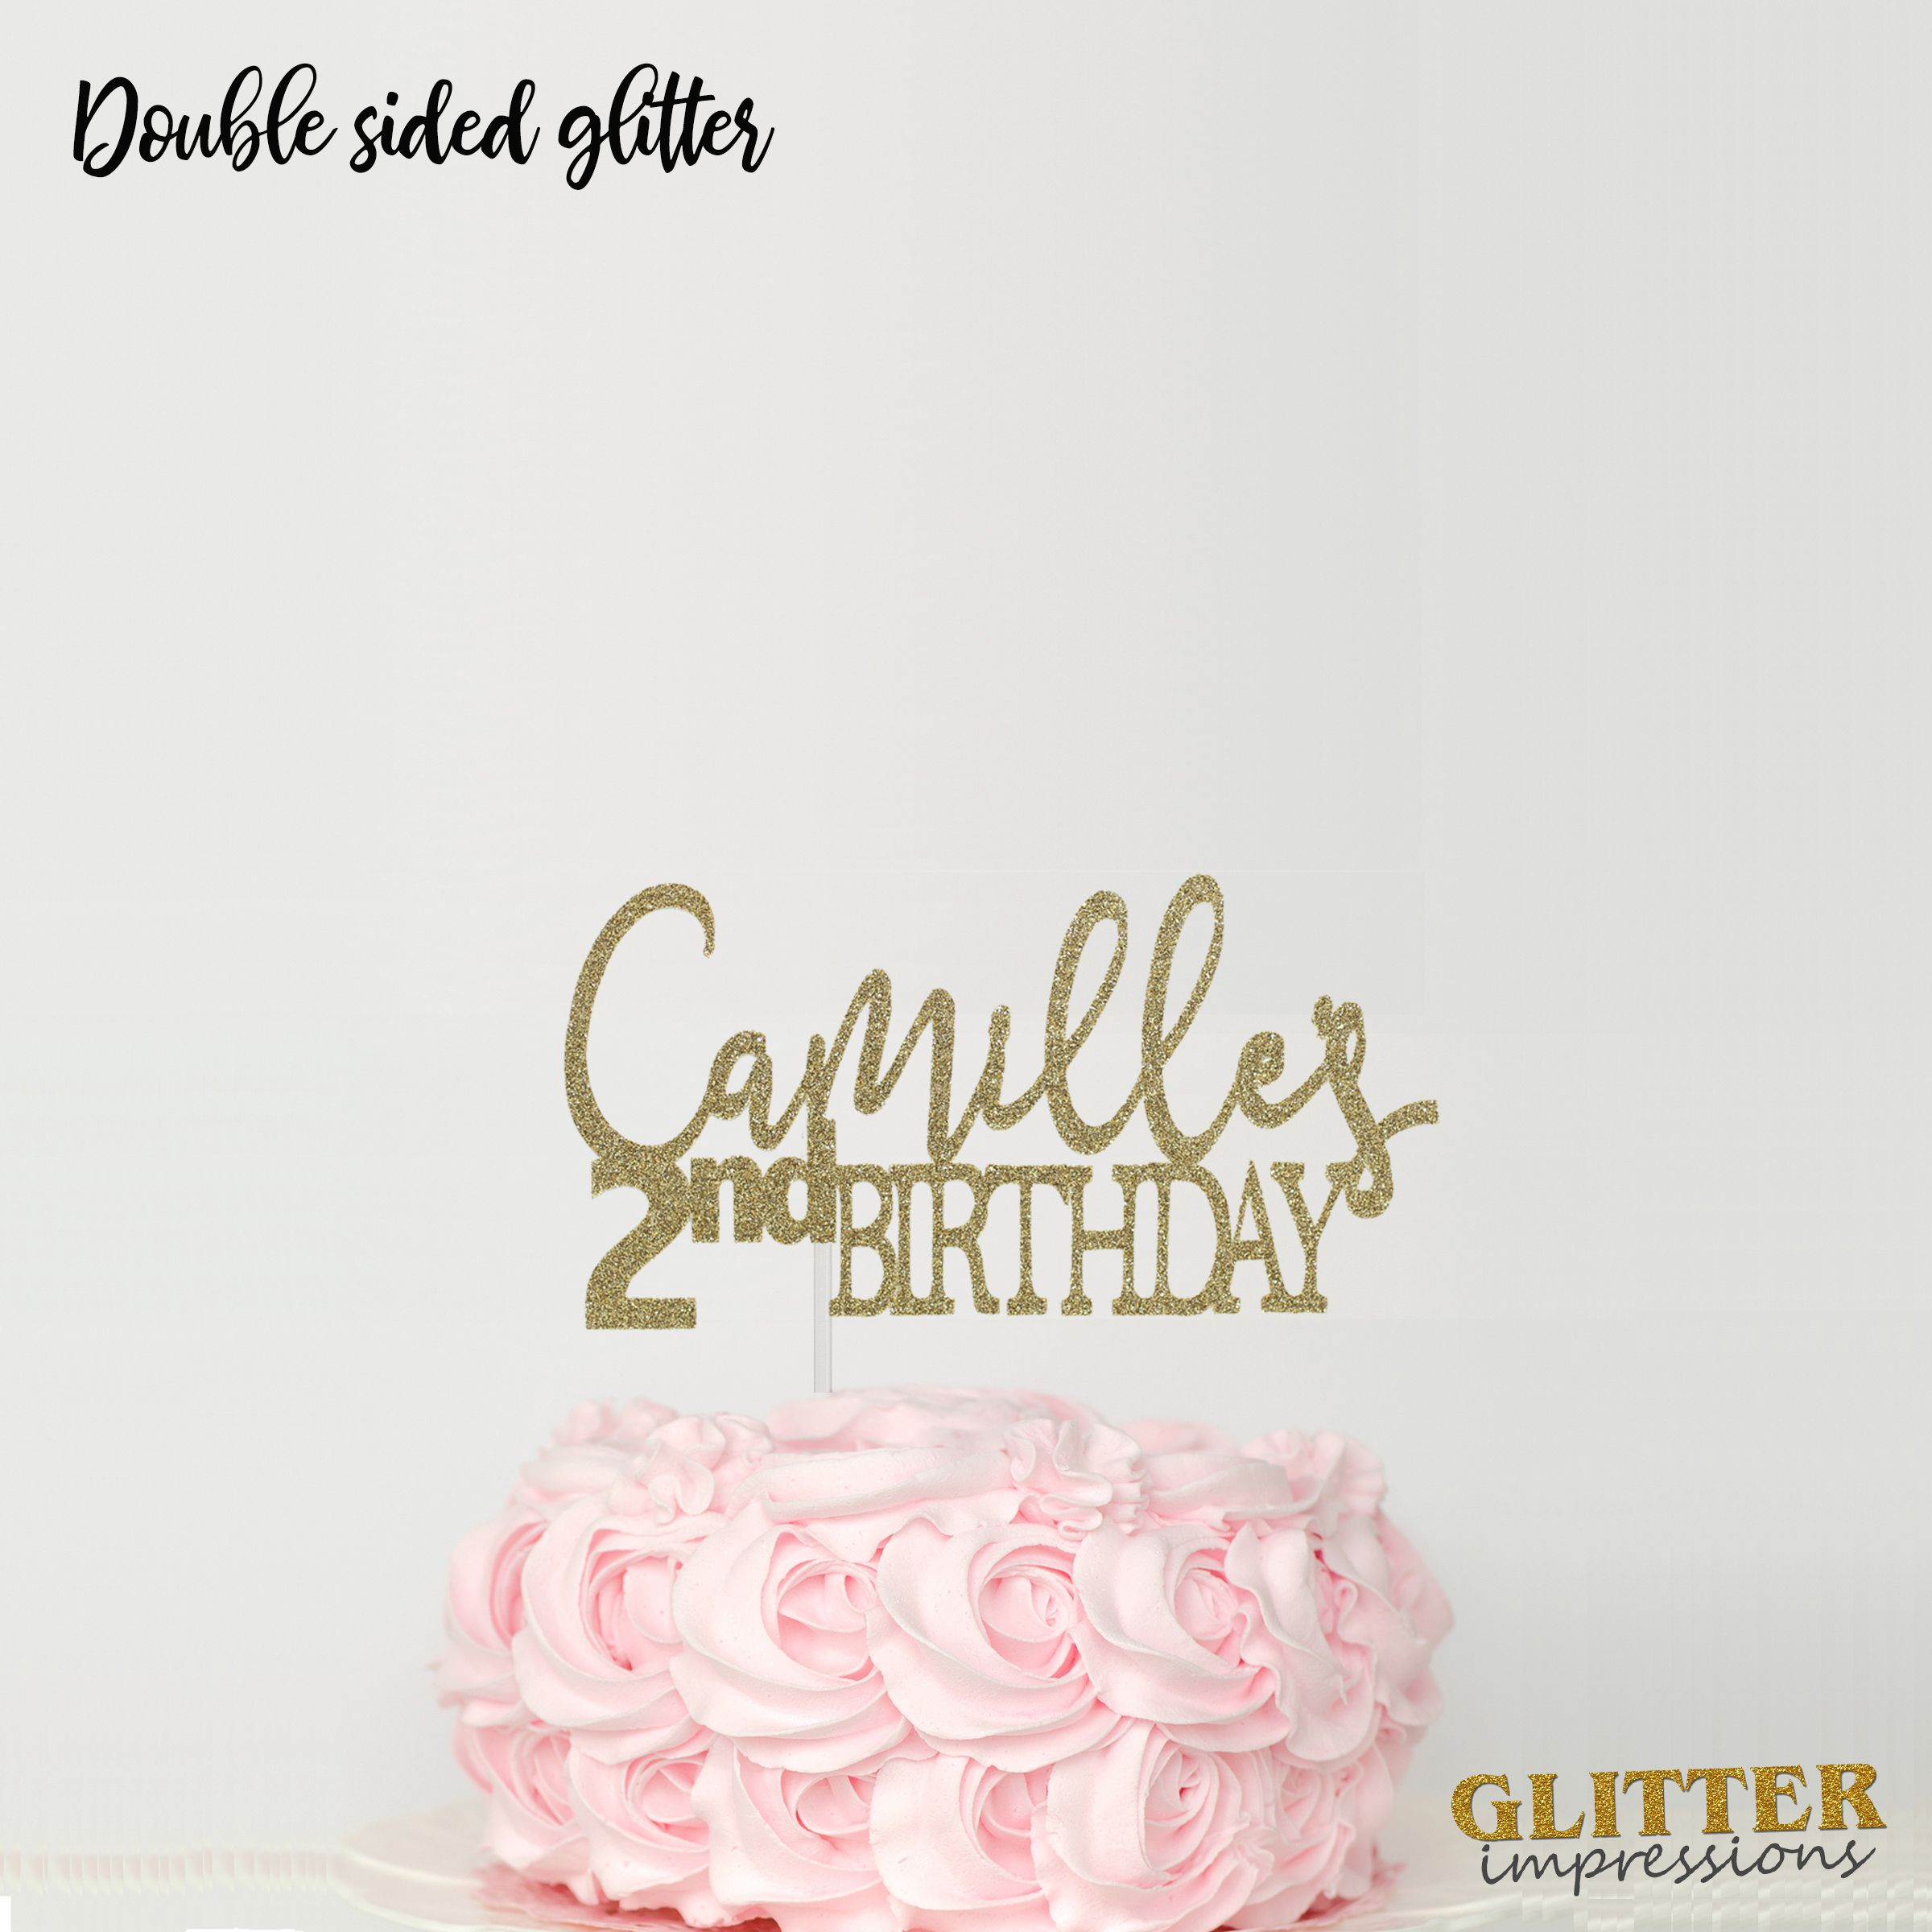 Personalized Name Birthday Cake Topper Cursive Font Glitter Sparkly